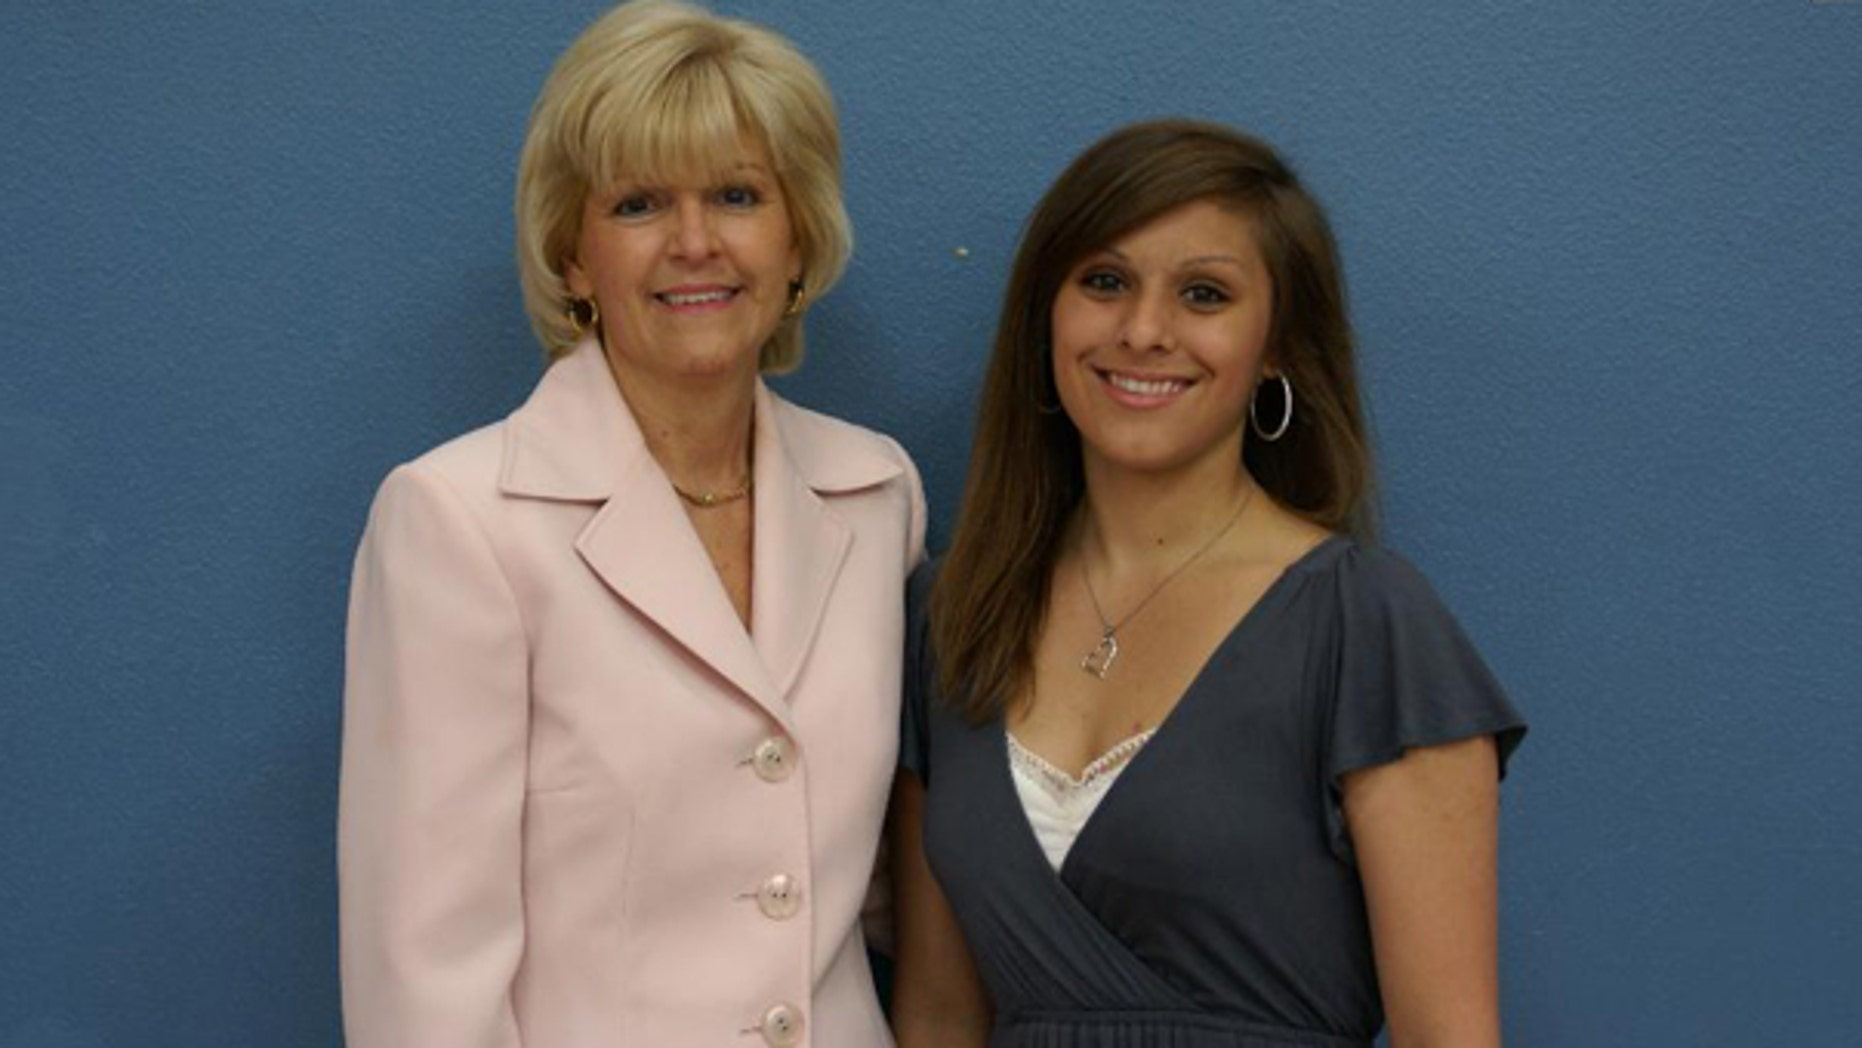 Jayne Peters, the mayor of an affluent Dallas suburb, killed her daughter Corinne in their home in Coppell, Tex., before committing suicide.